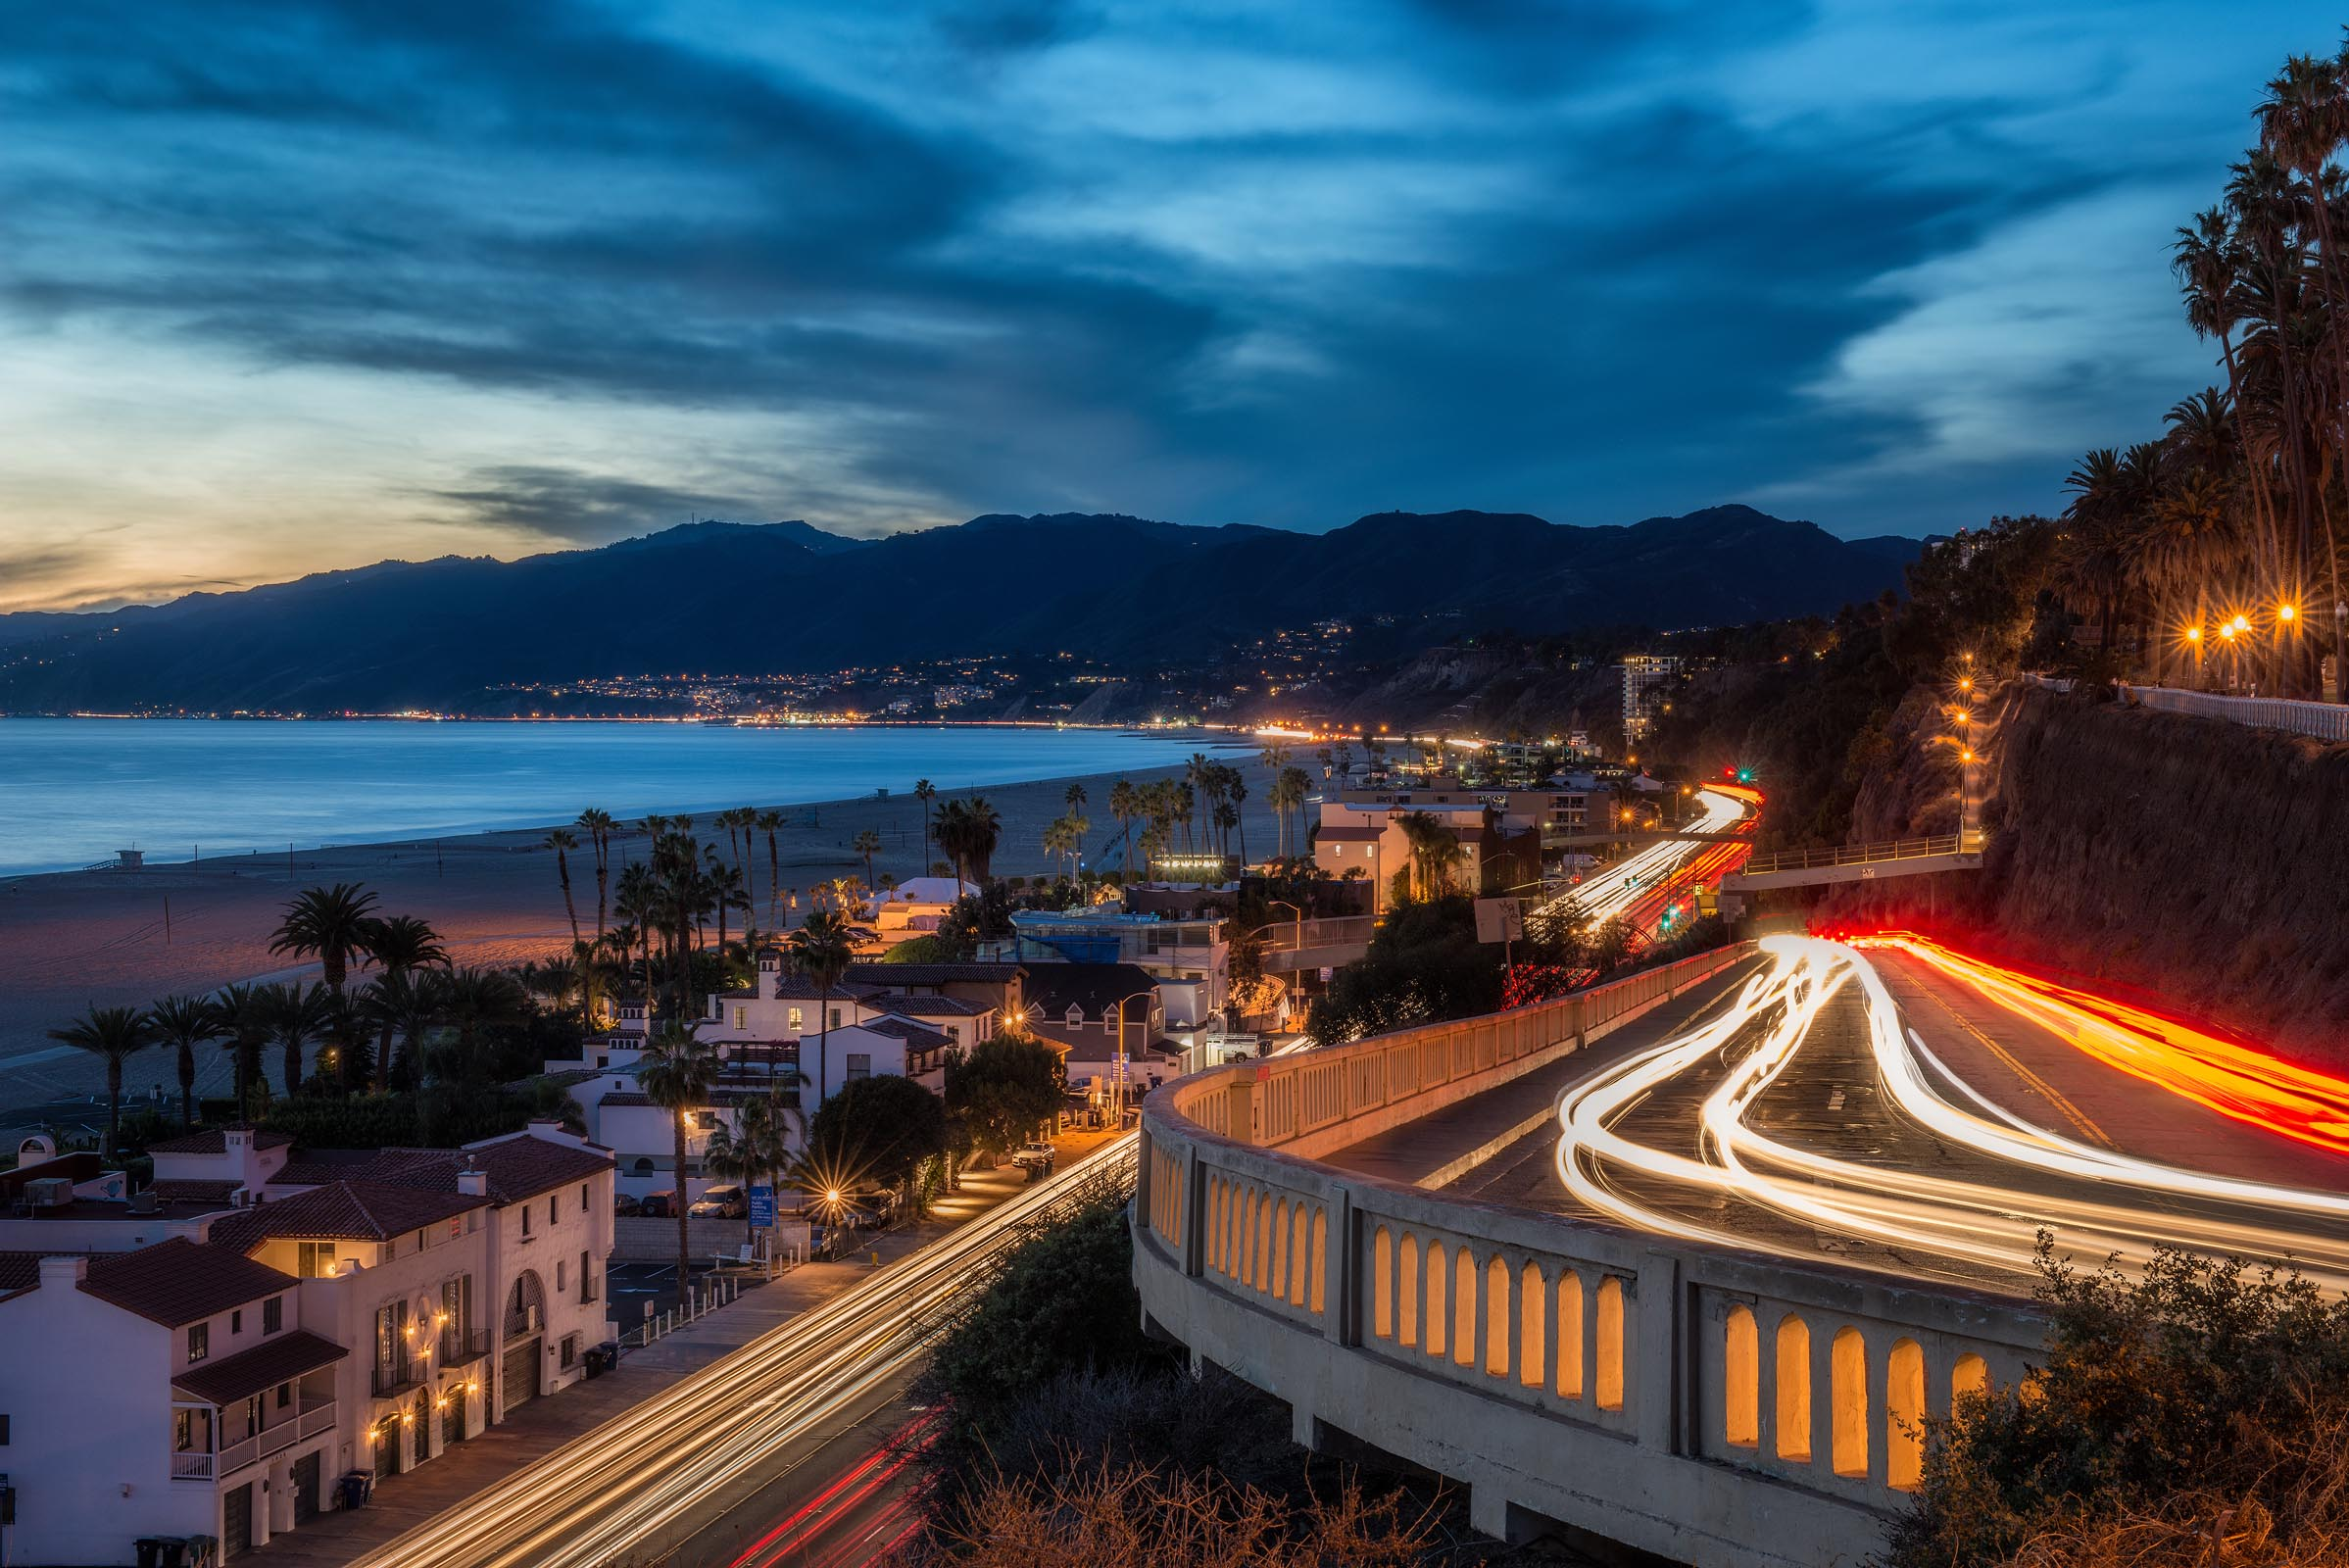 Photograph of Pacific Coast Highway in Santa Monica, California by Brent Goldman Photography